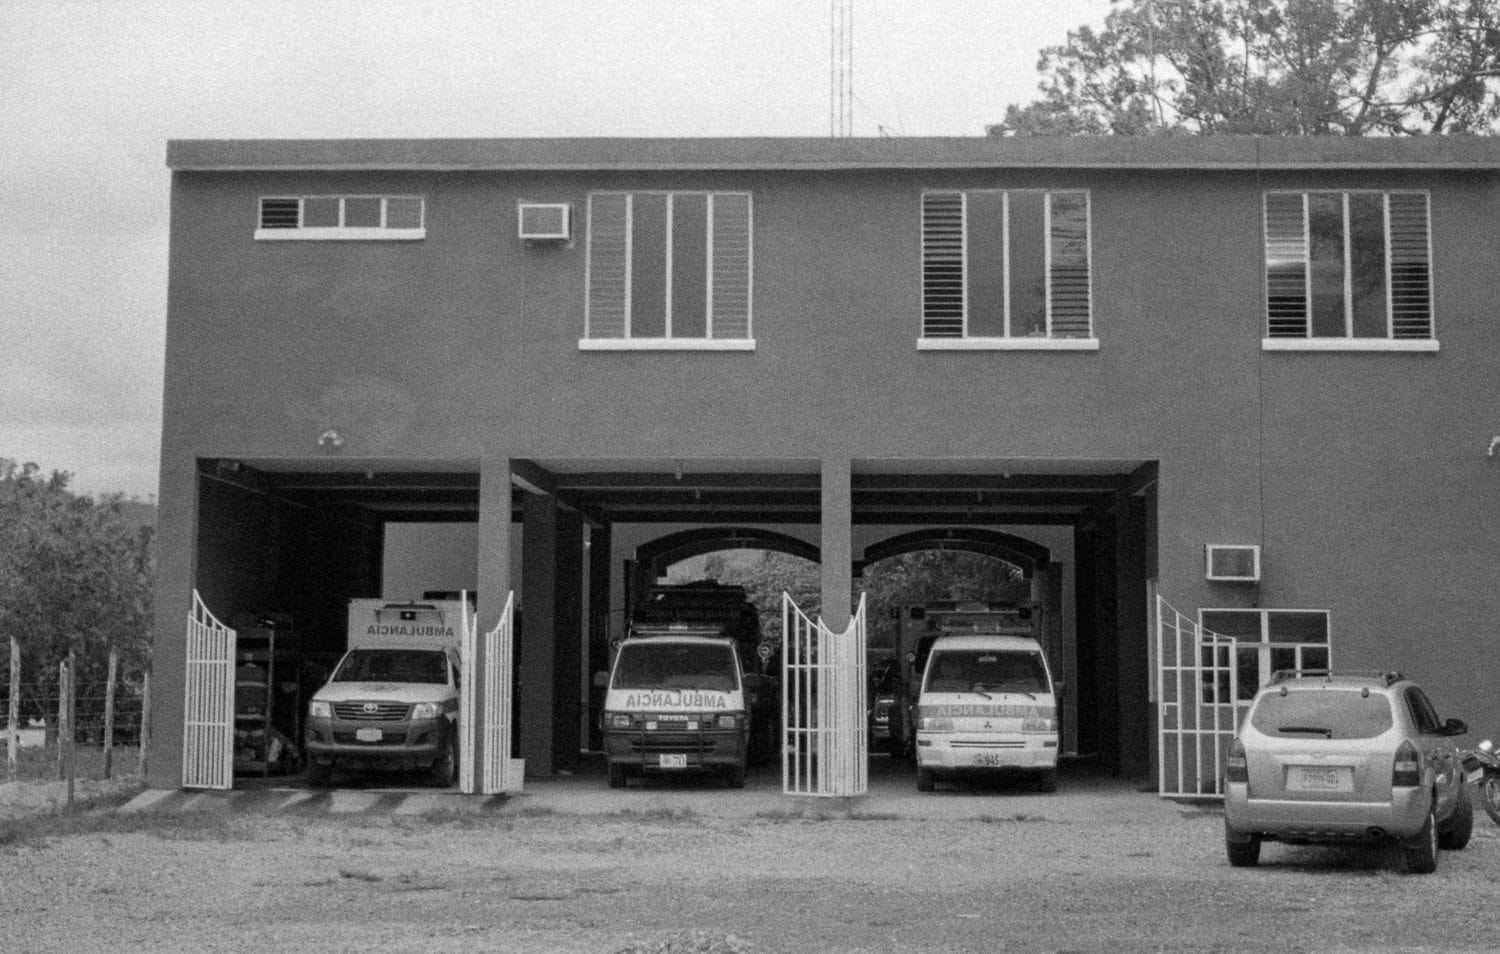 Estación de Bomberos Voluntarios de Guatemala con Ilford HP5 Plus 400